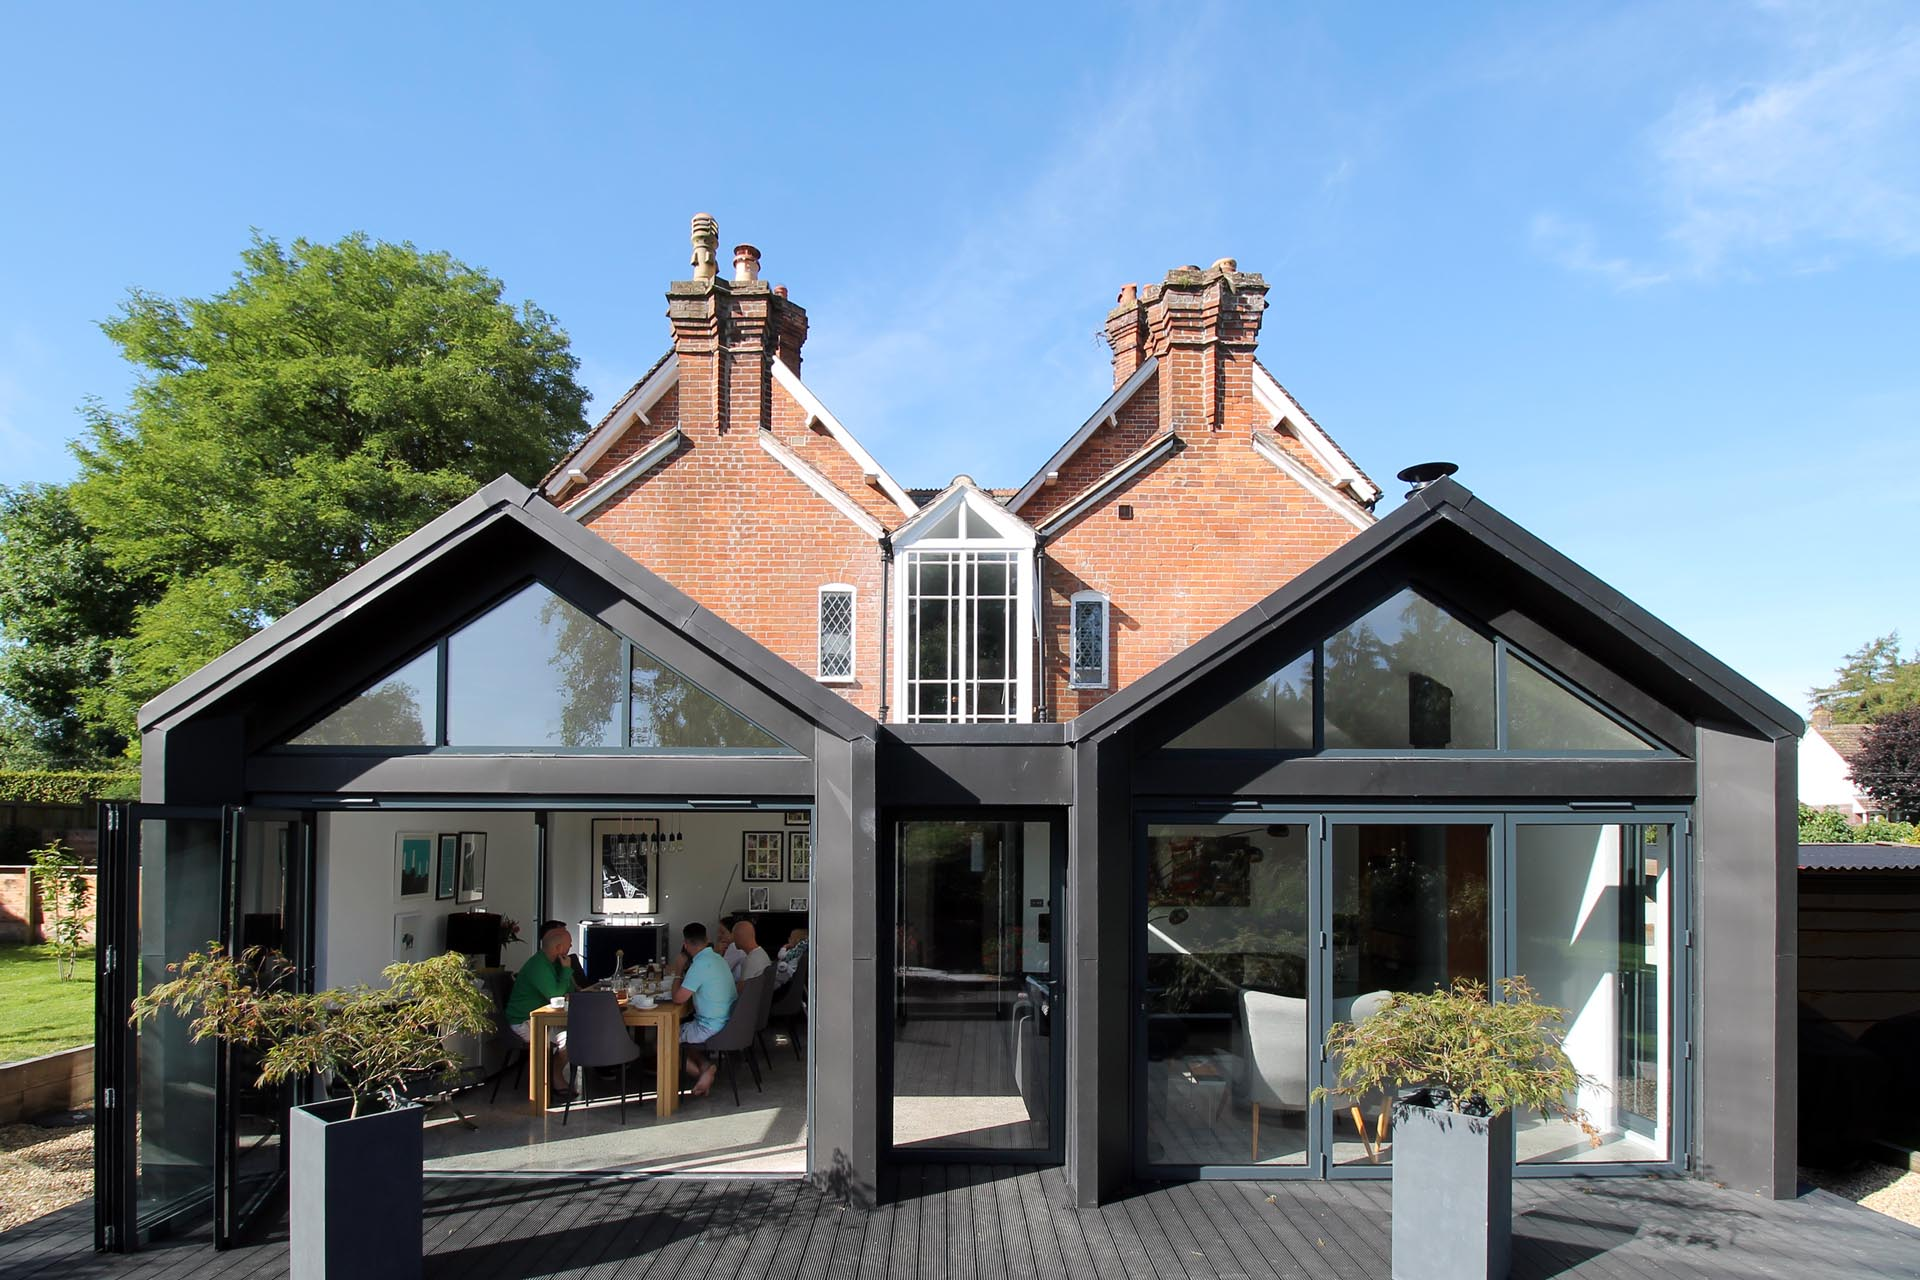 A modern extension with pitched roofs and black in black zinc.